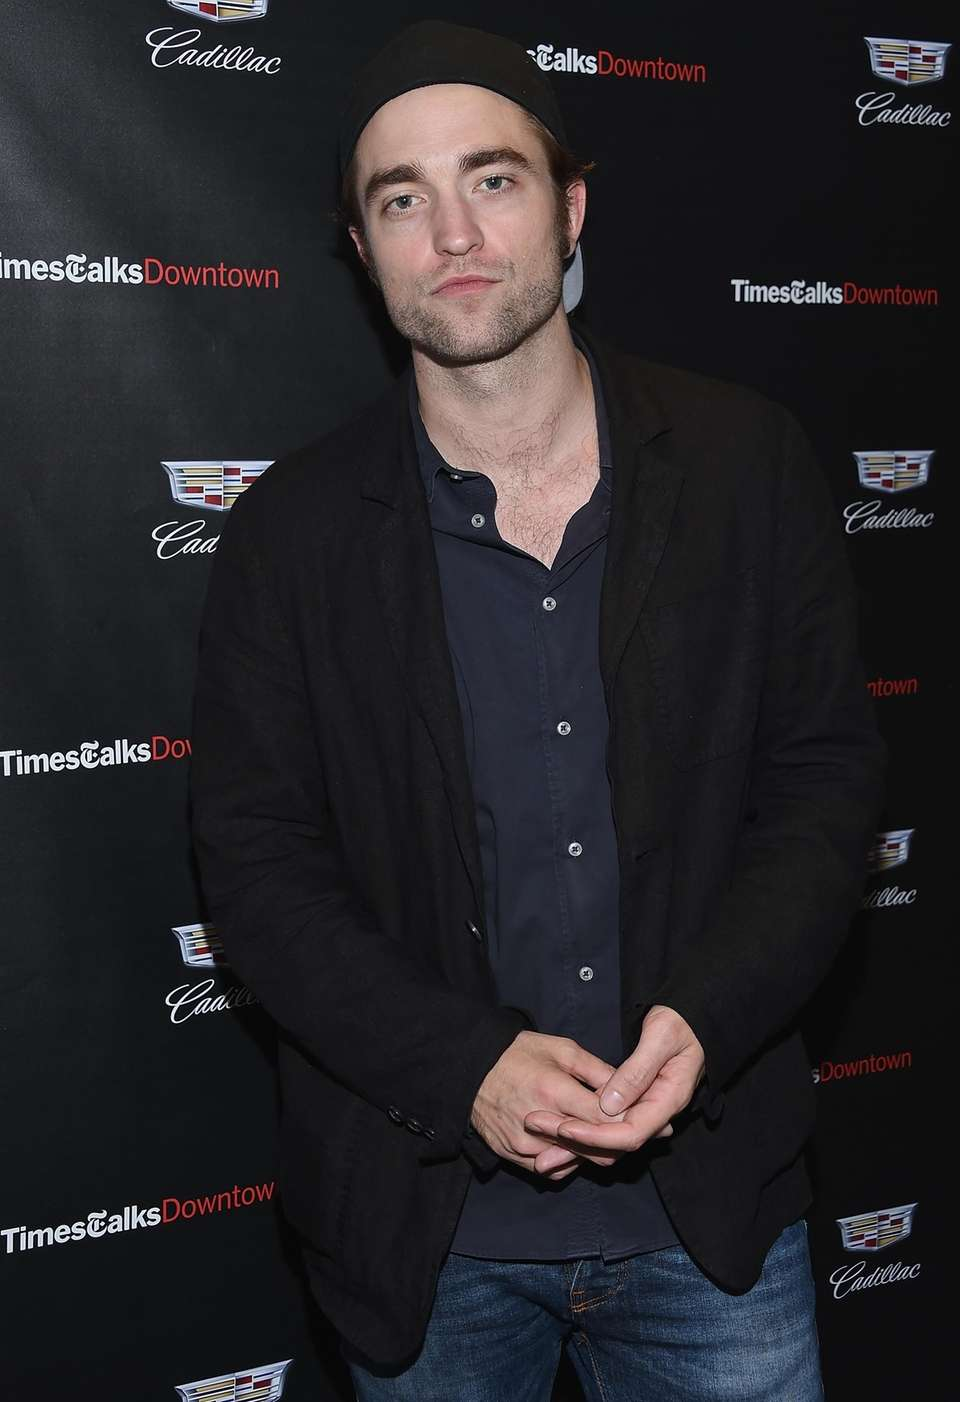 Robert Pattinson attends an event for his new